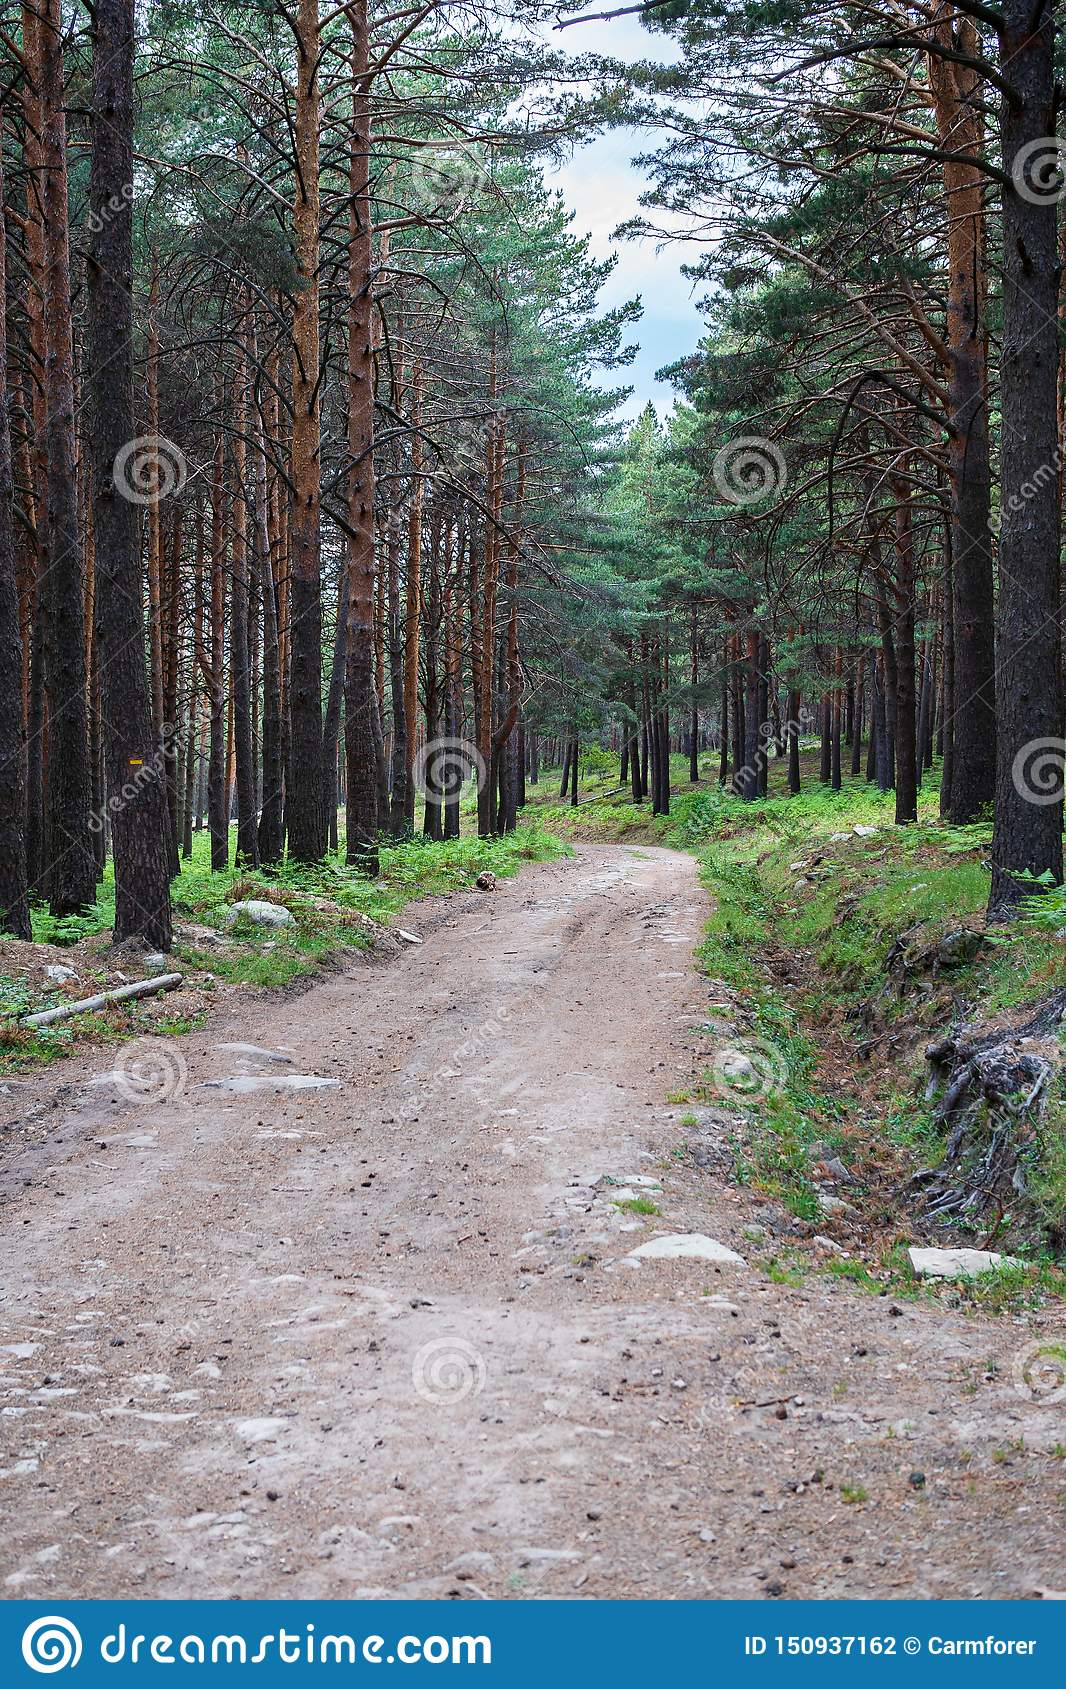 A path in the pine forest